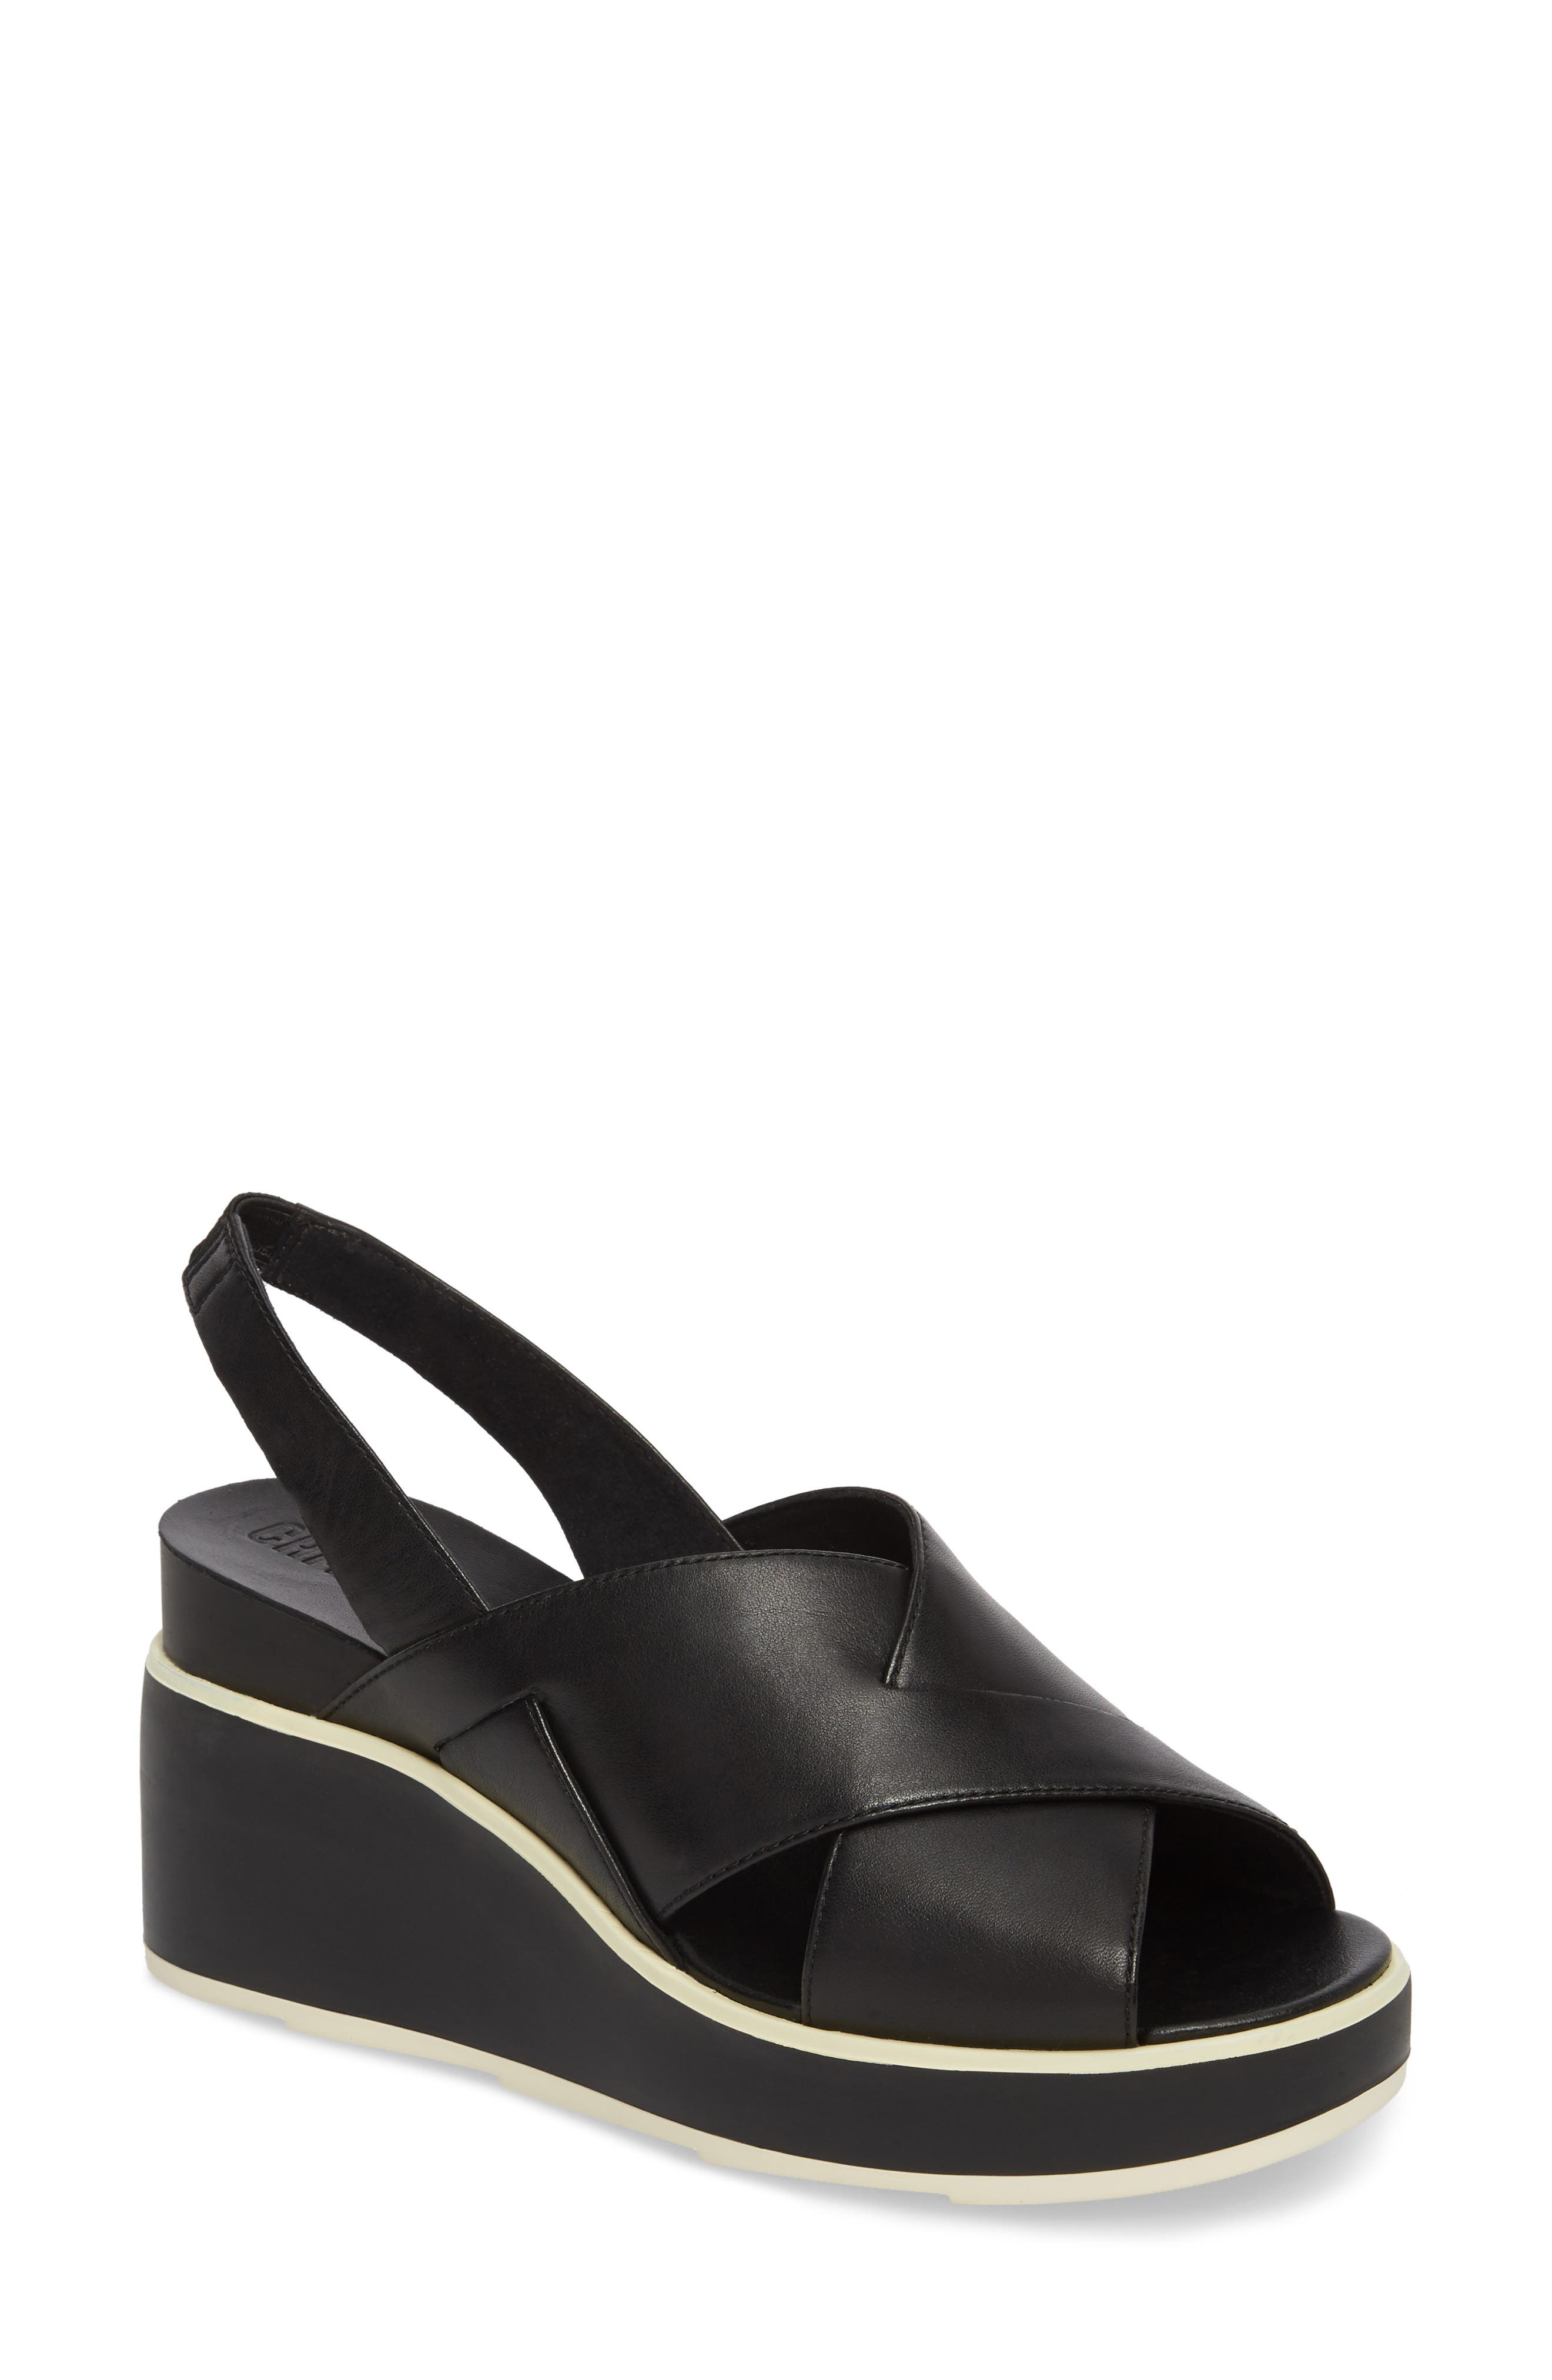 Main Image - Camper Tropik Cross Strap Wedge Sandal (Women)